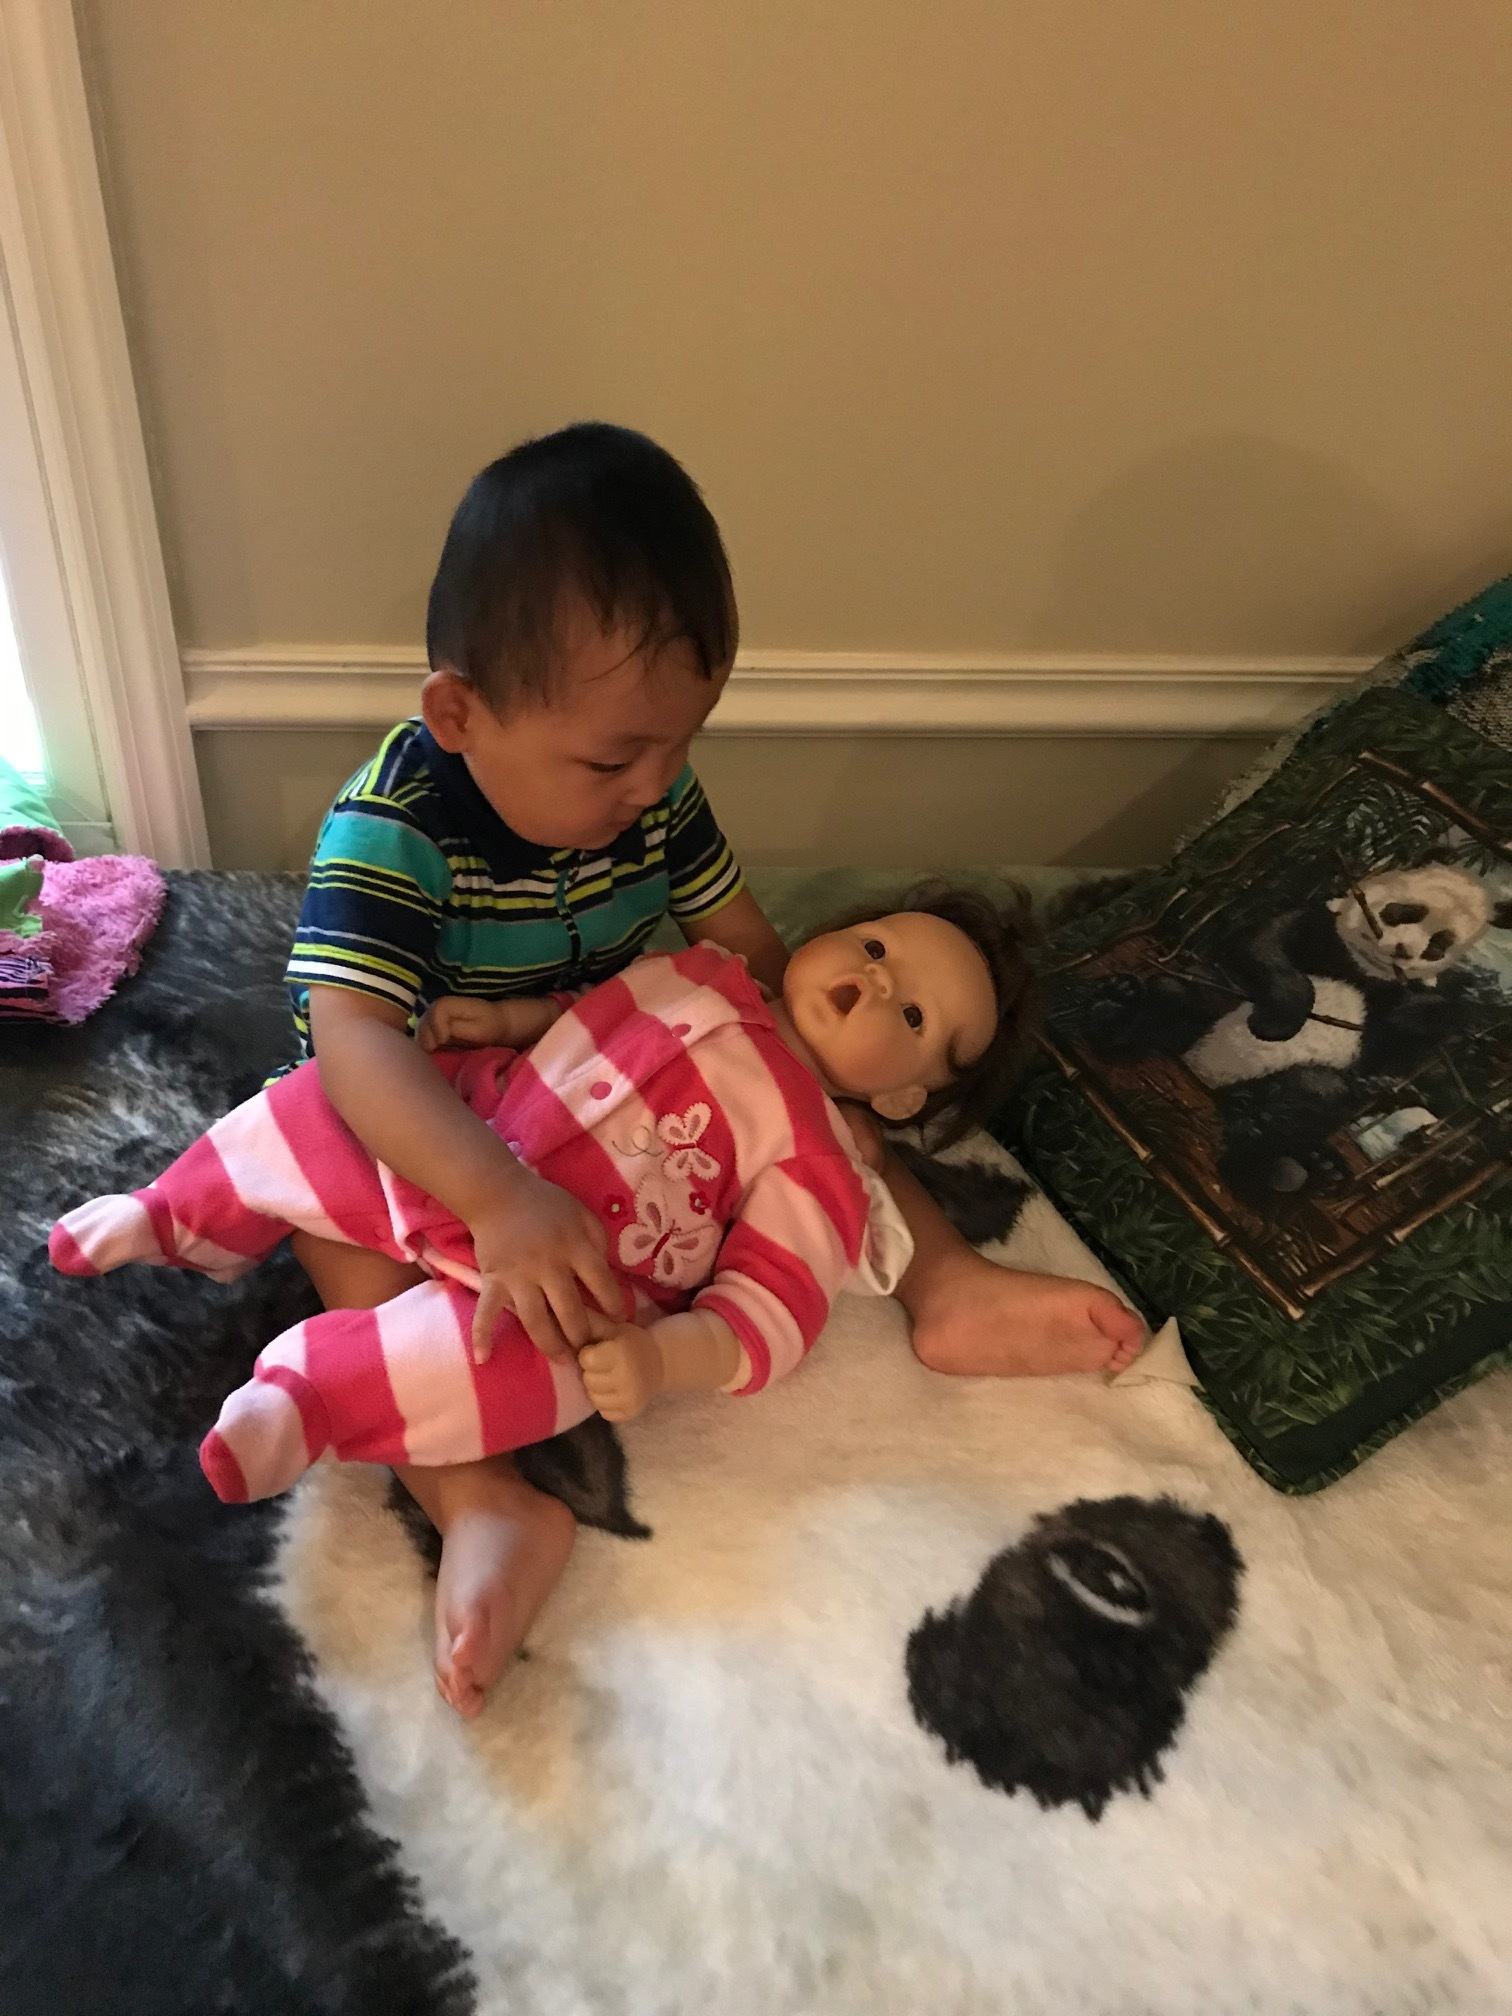 Playing with his sister's doll